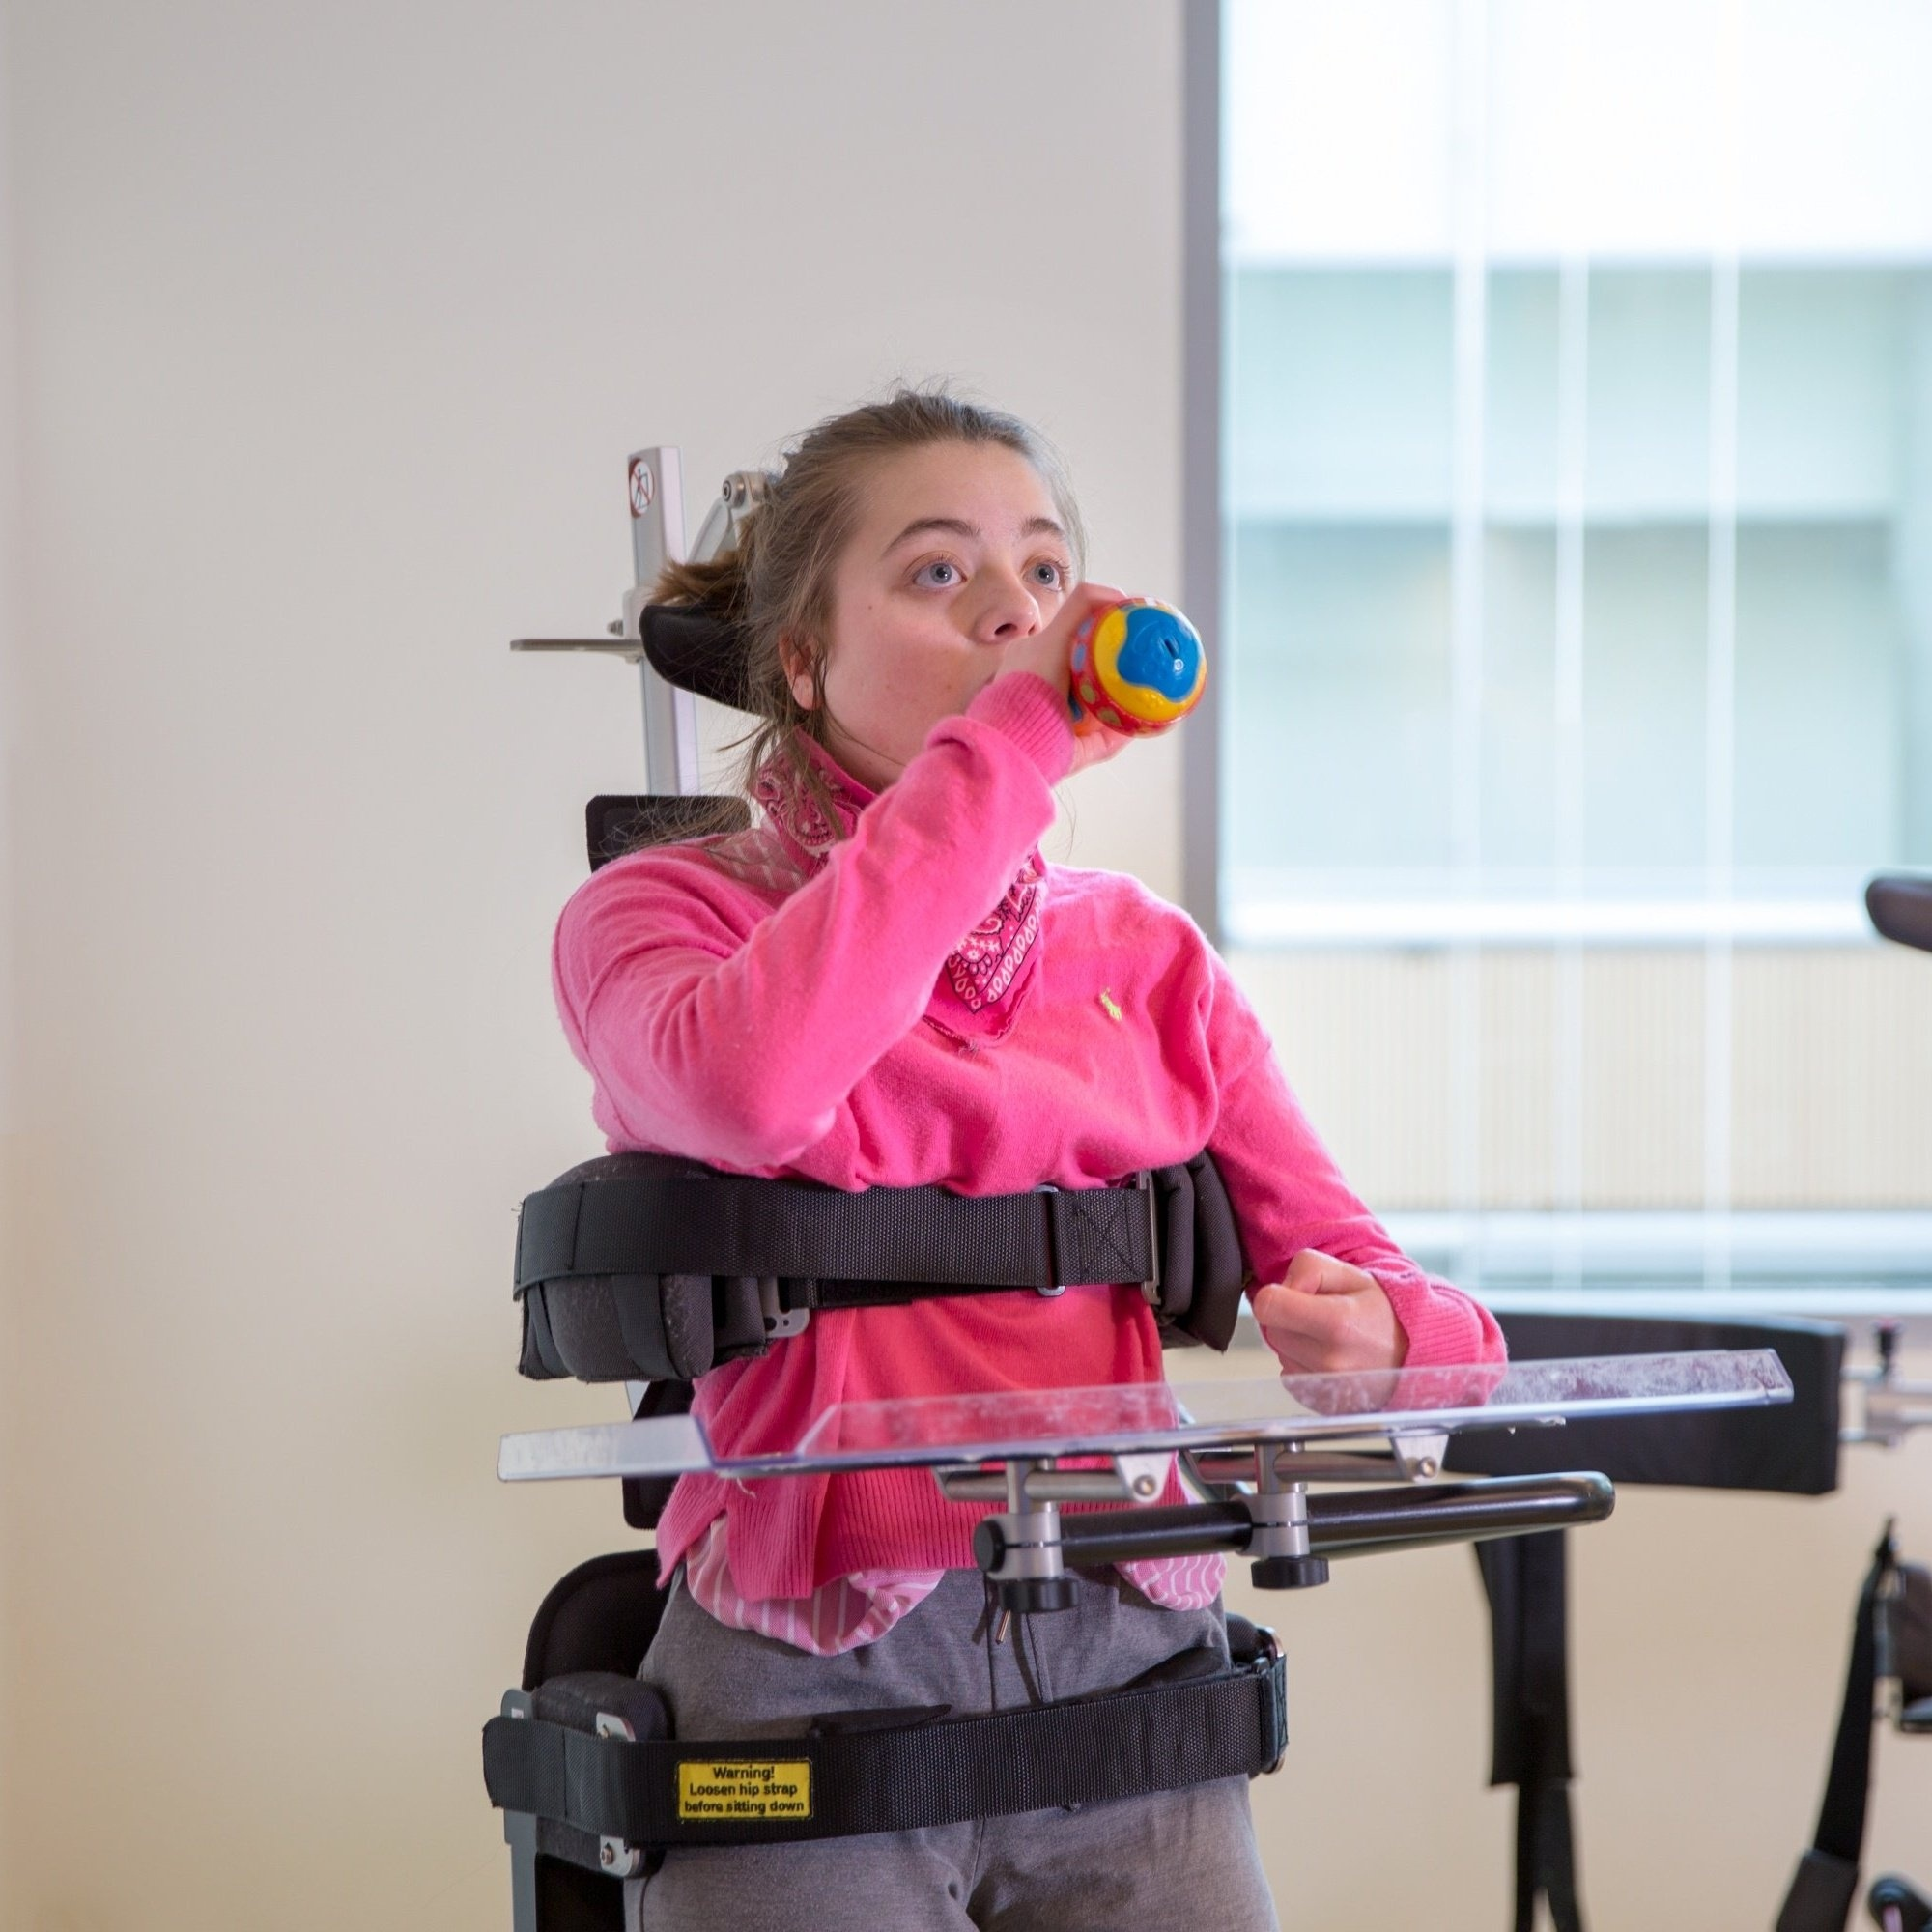 Girl in assistive device. Dressed in pink playing with a toy.